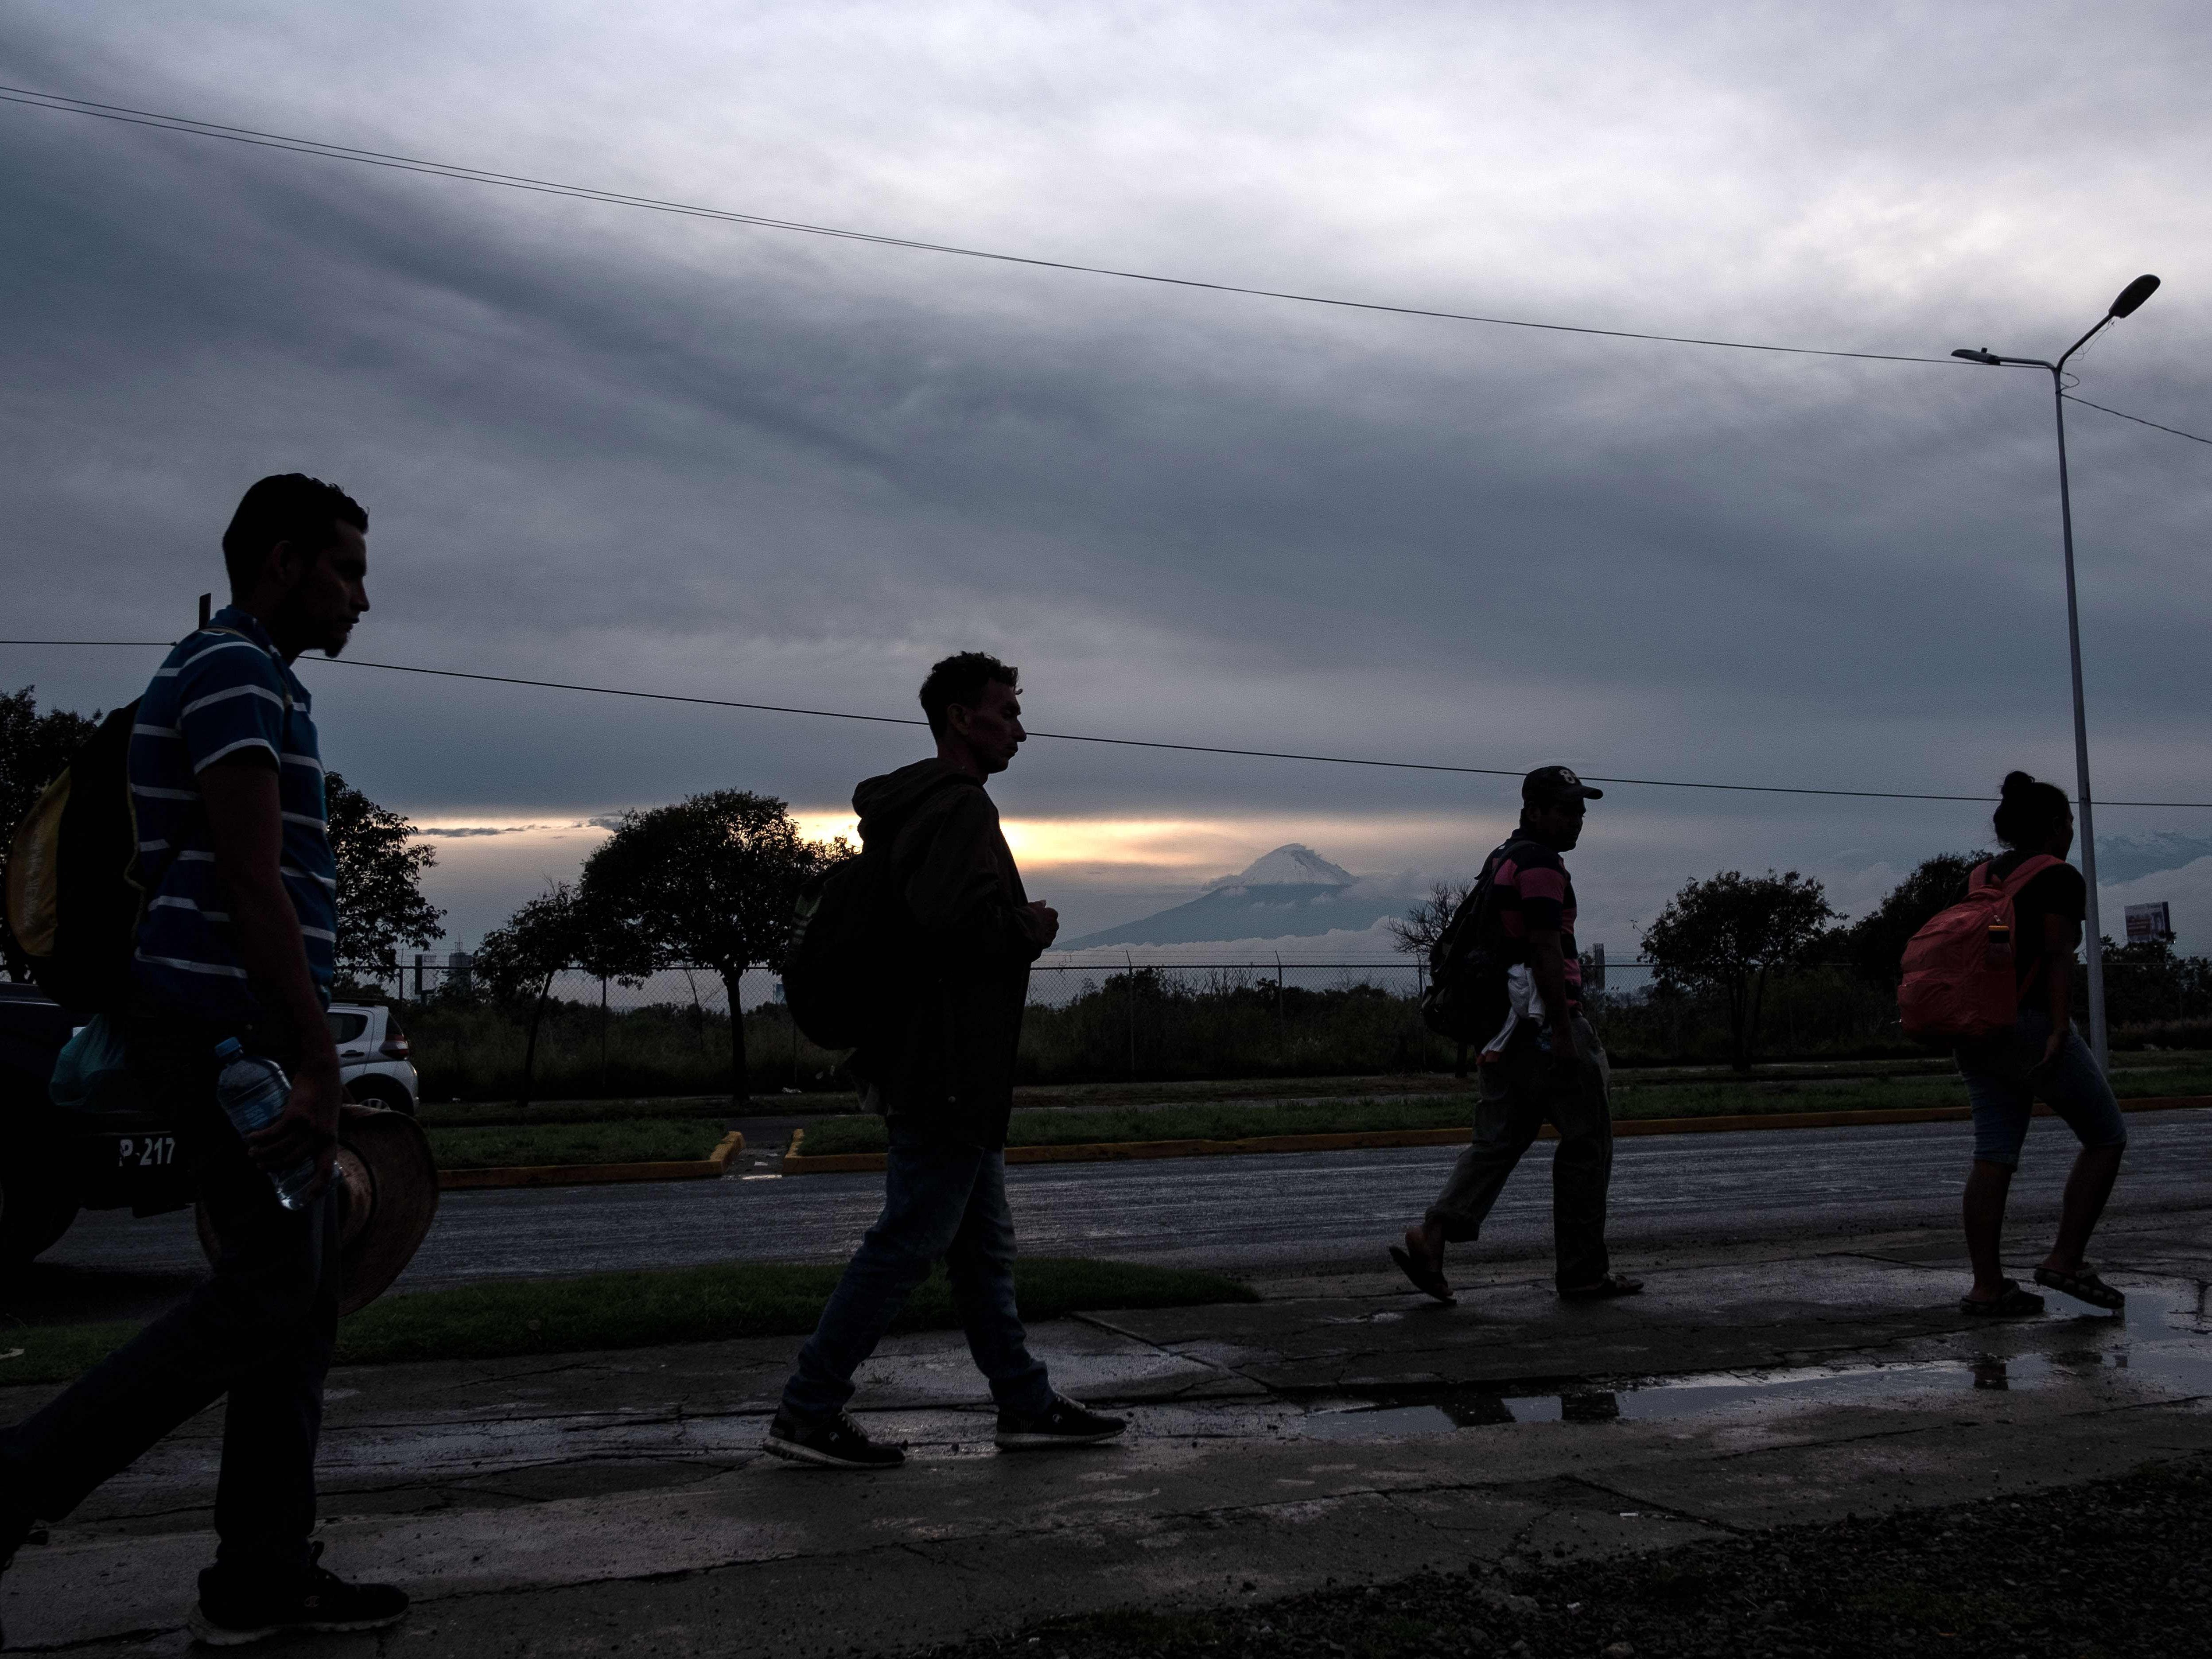 Central American migrants continue moving towards the United States in hopes of a better life or to escape violence, head to a shelter after arriving in Puebla, Mexico, on Nov. 4, 2018.